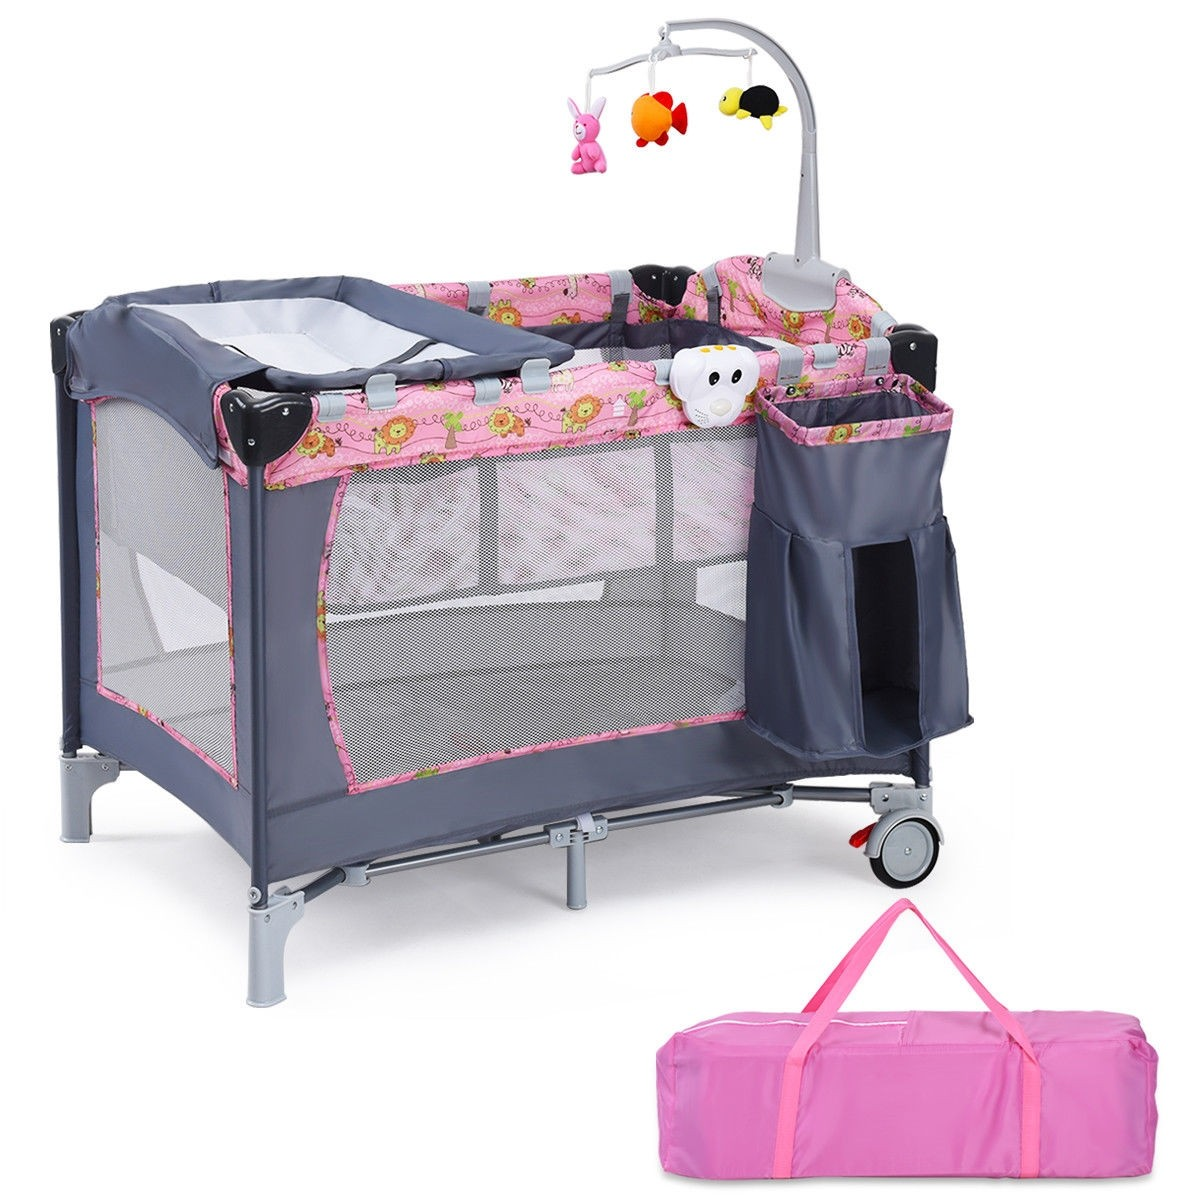 Baby Playpen How Foldable 2 Color Baby Crib Playpen Playard